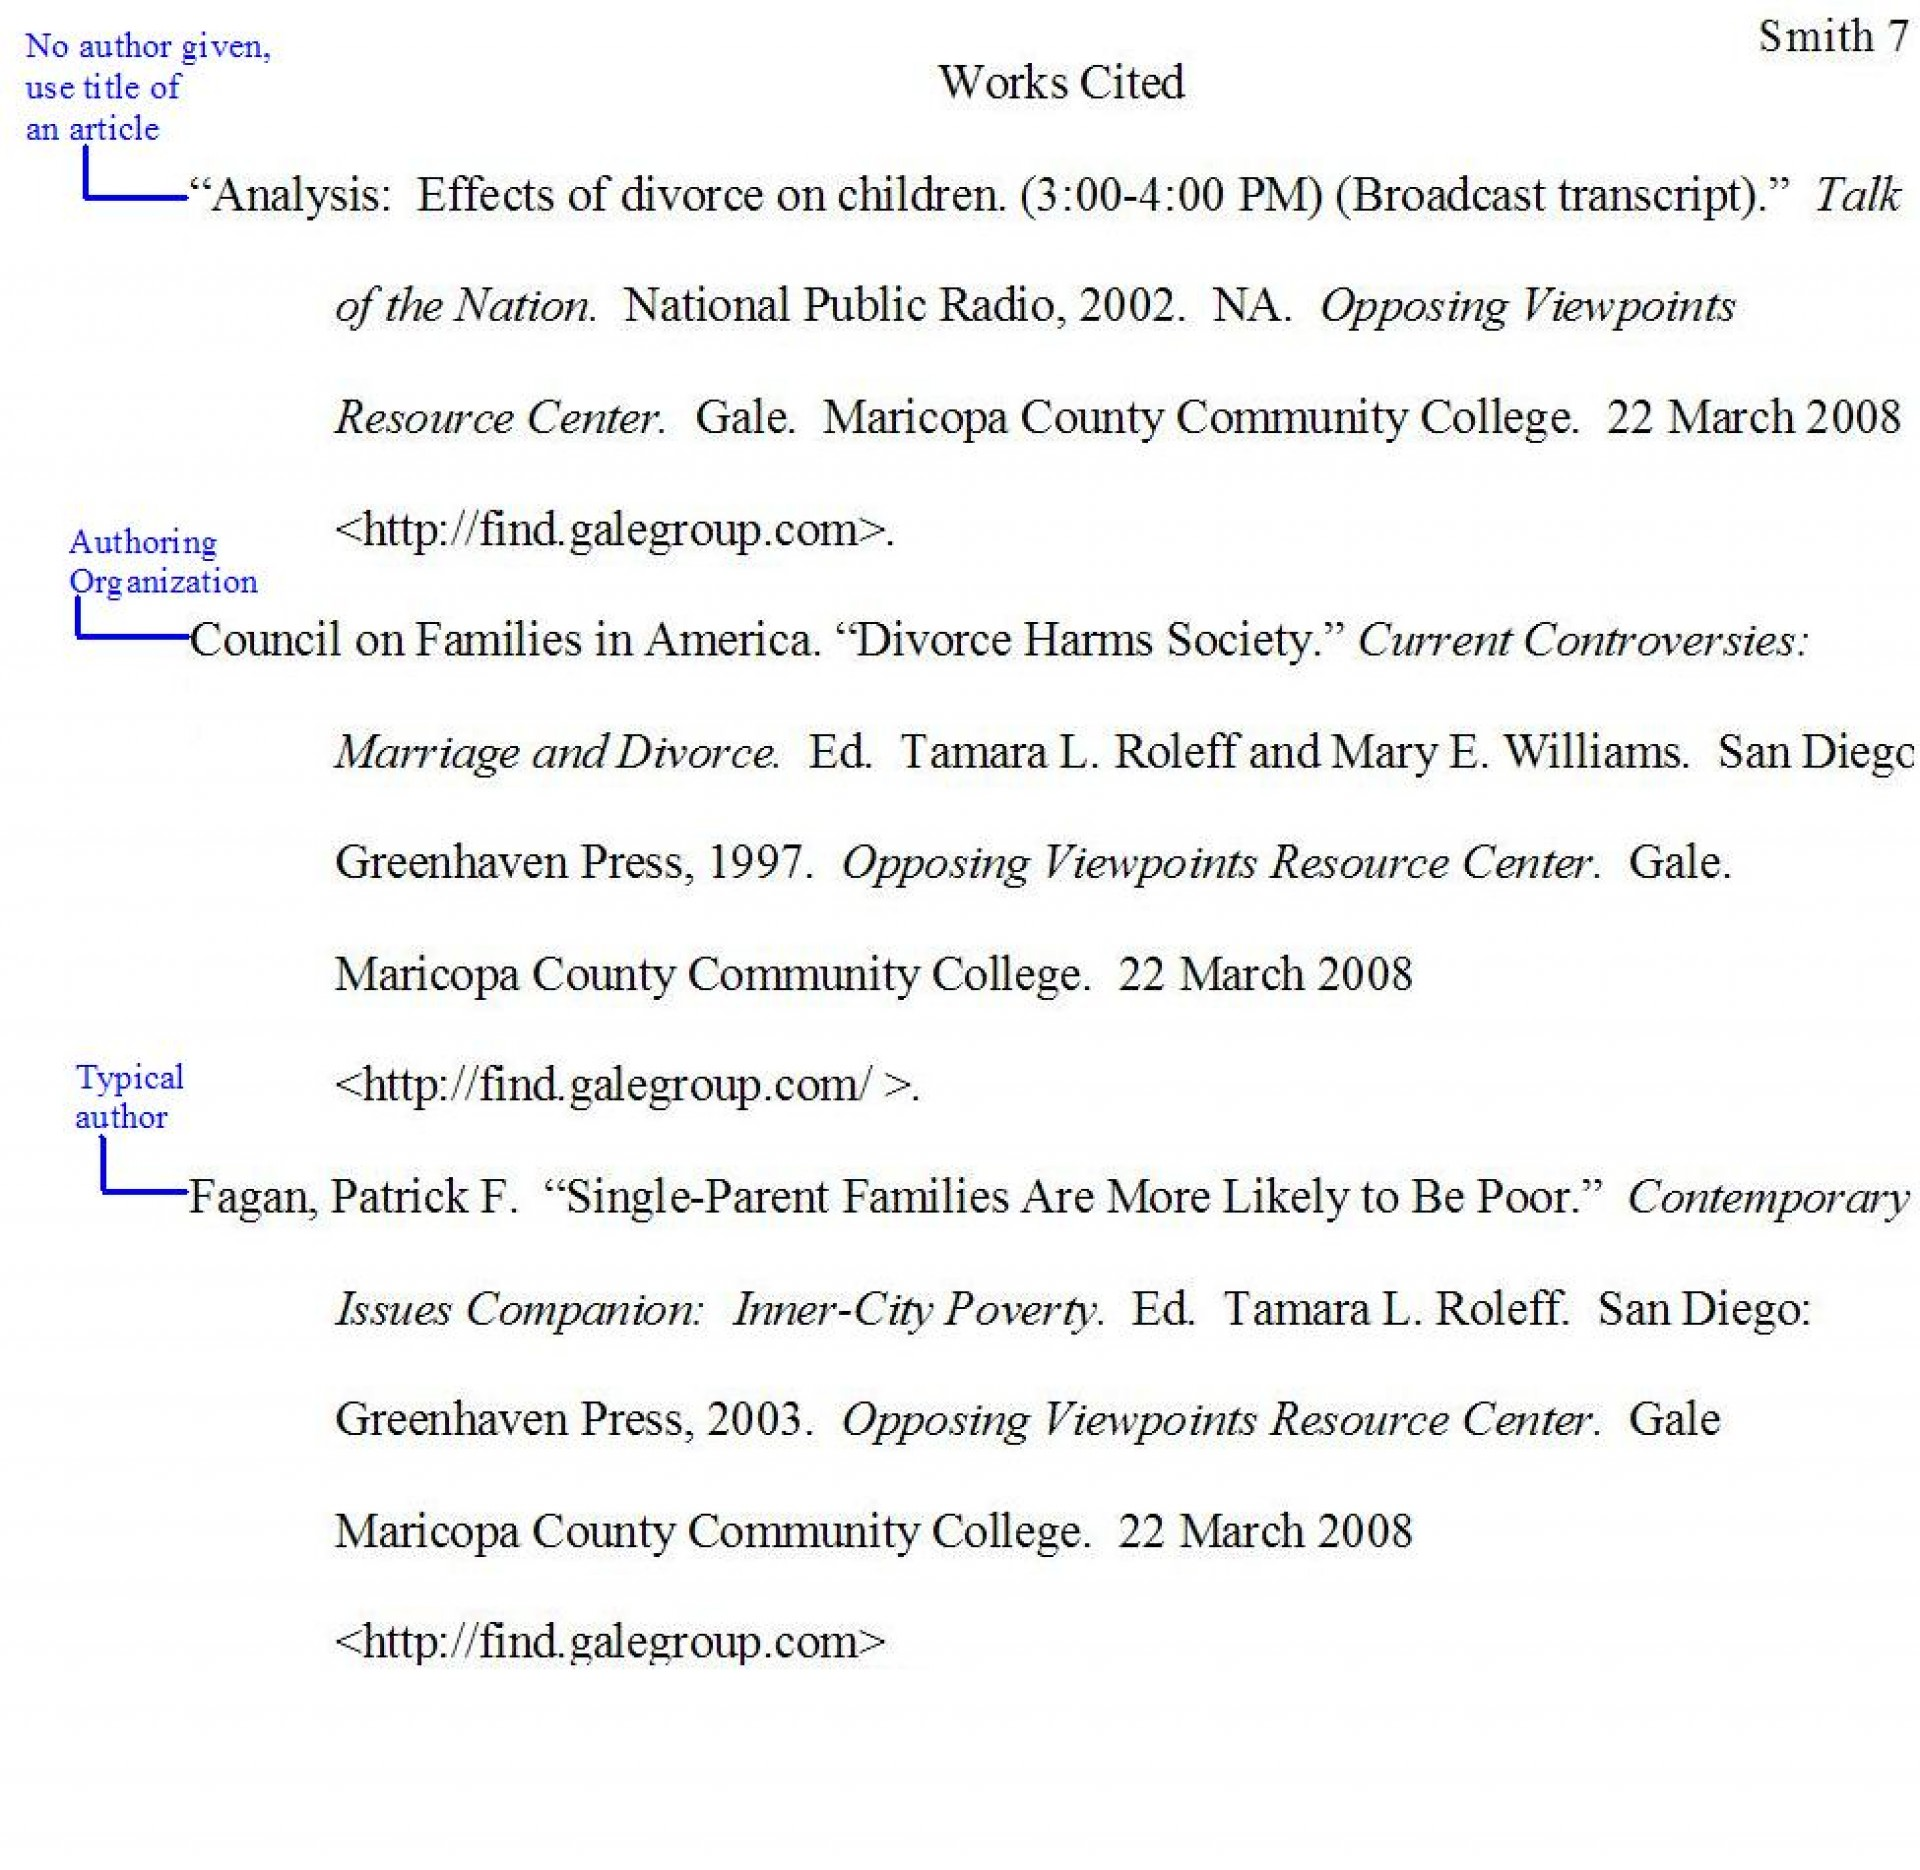 015 Example Of Research Paper Using Mla Style Samplewrkctd Fascinating Writing A Outline 1920